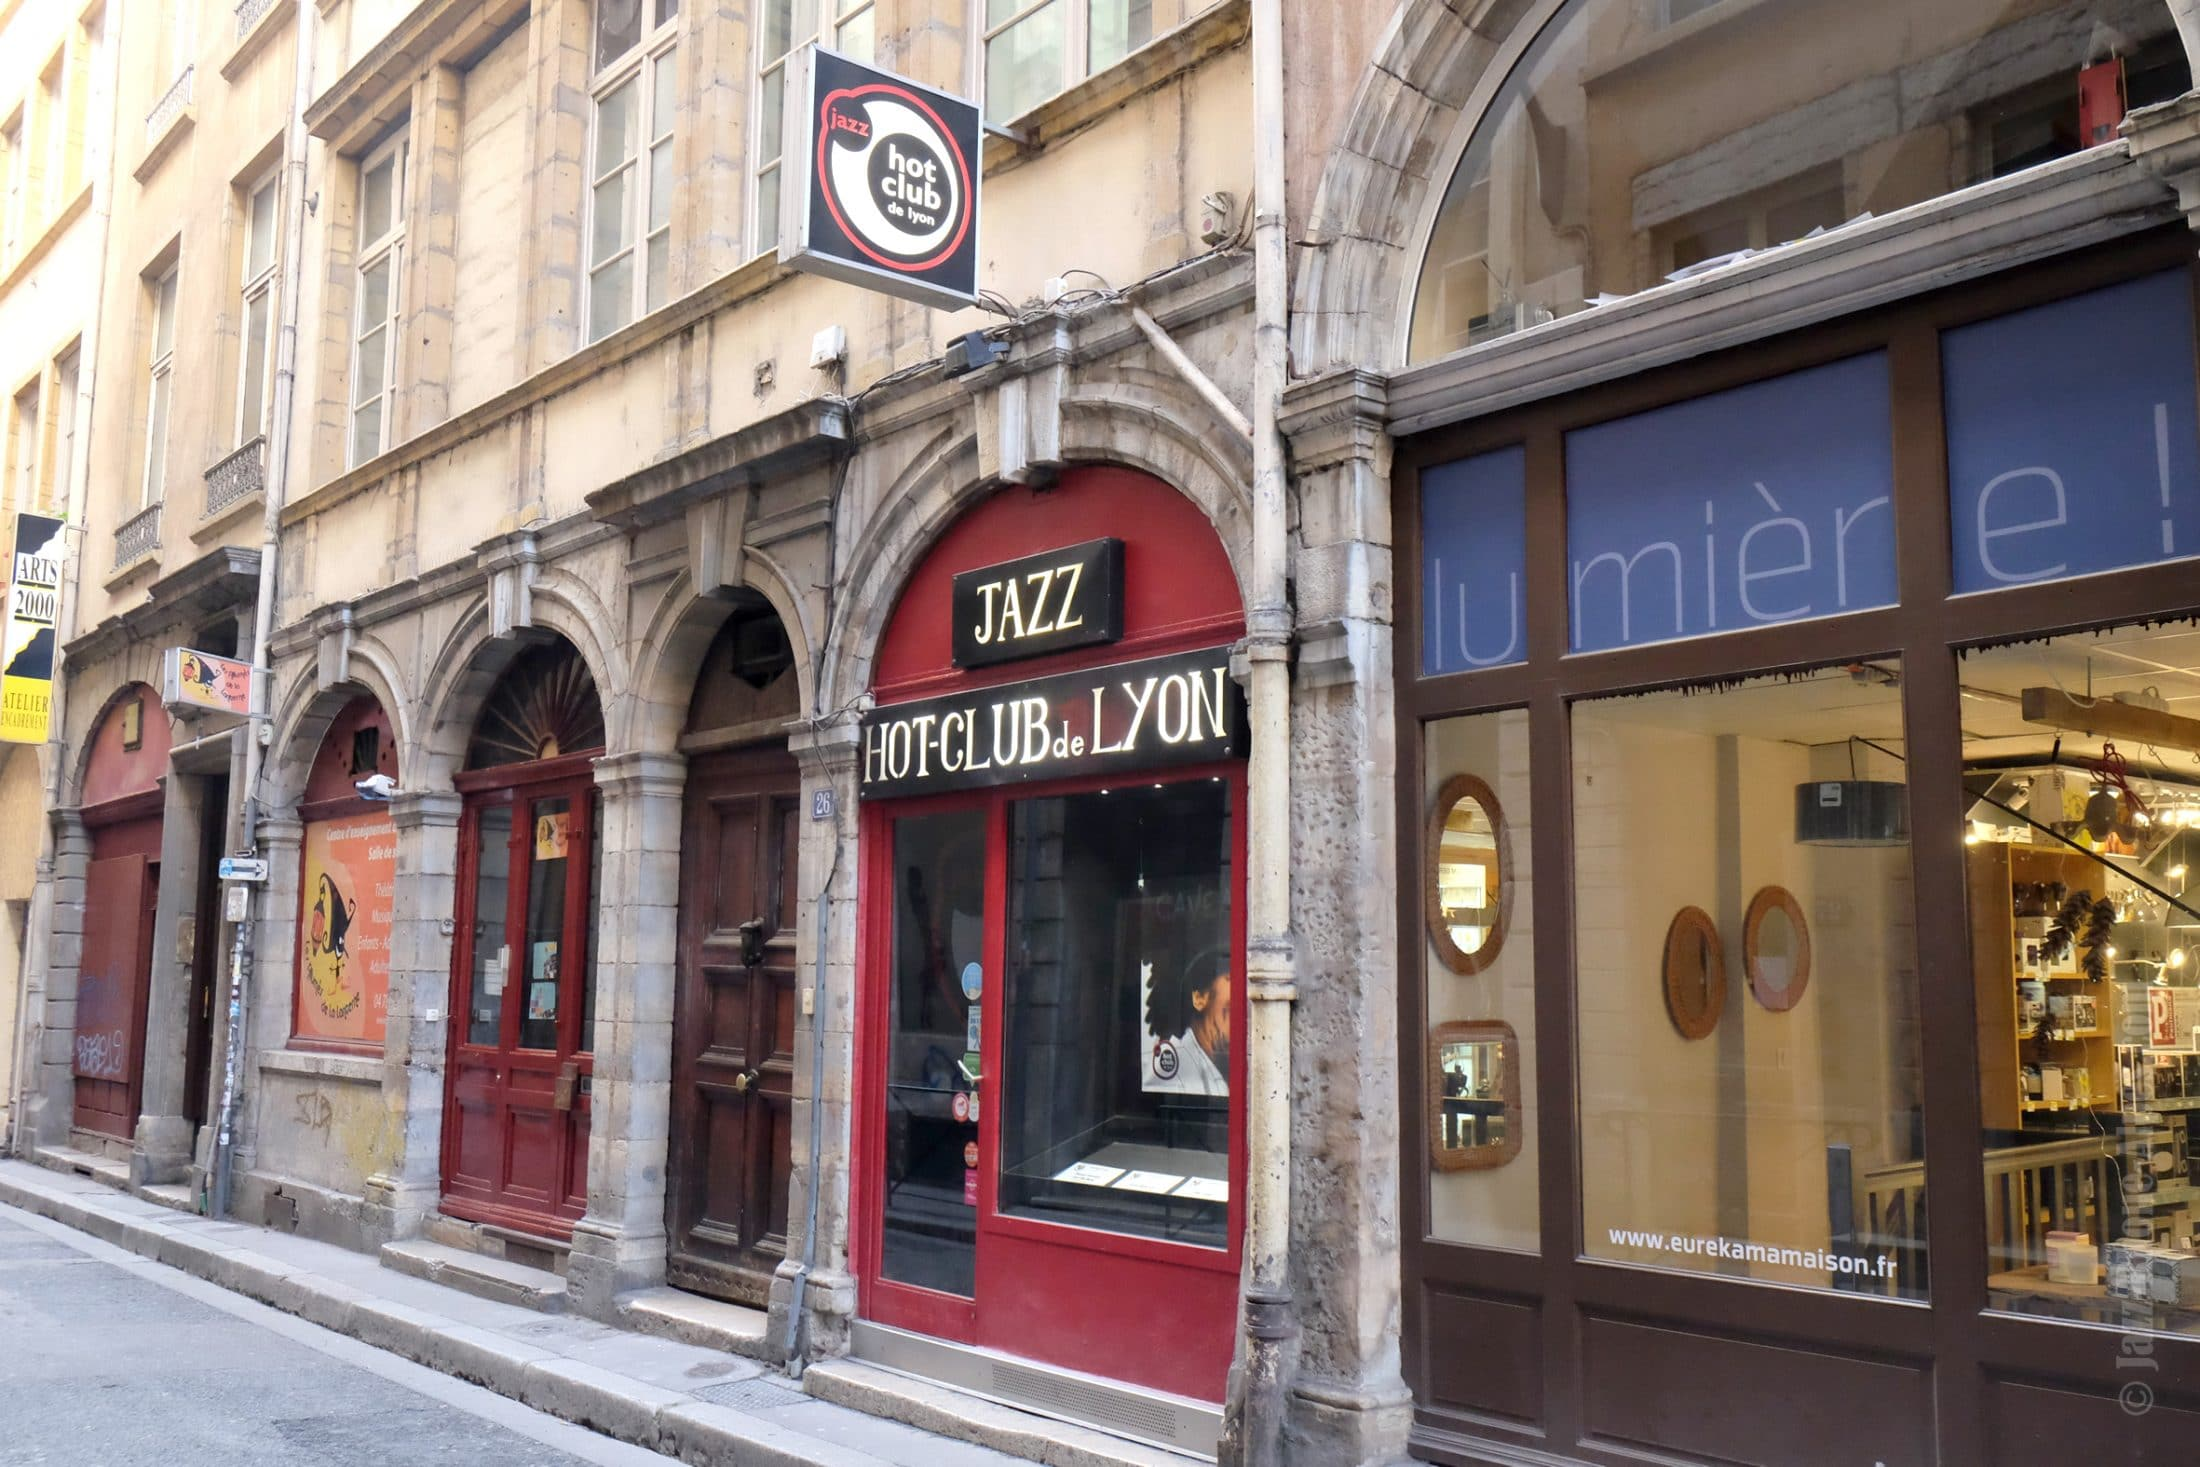 Hot-club-de-lyon-12074-2362x1575